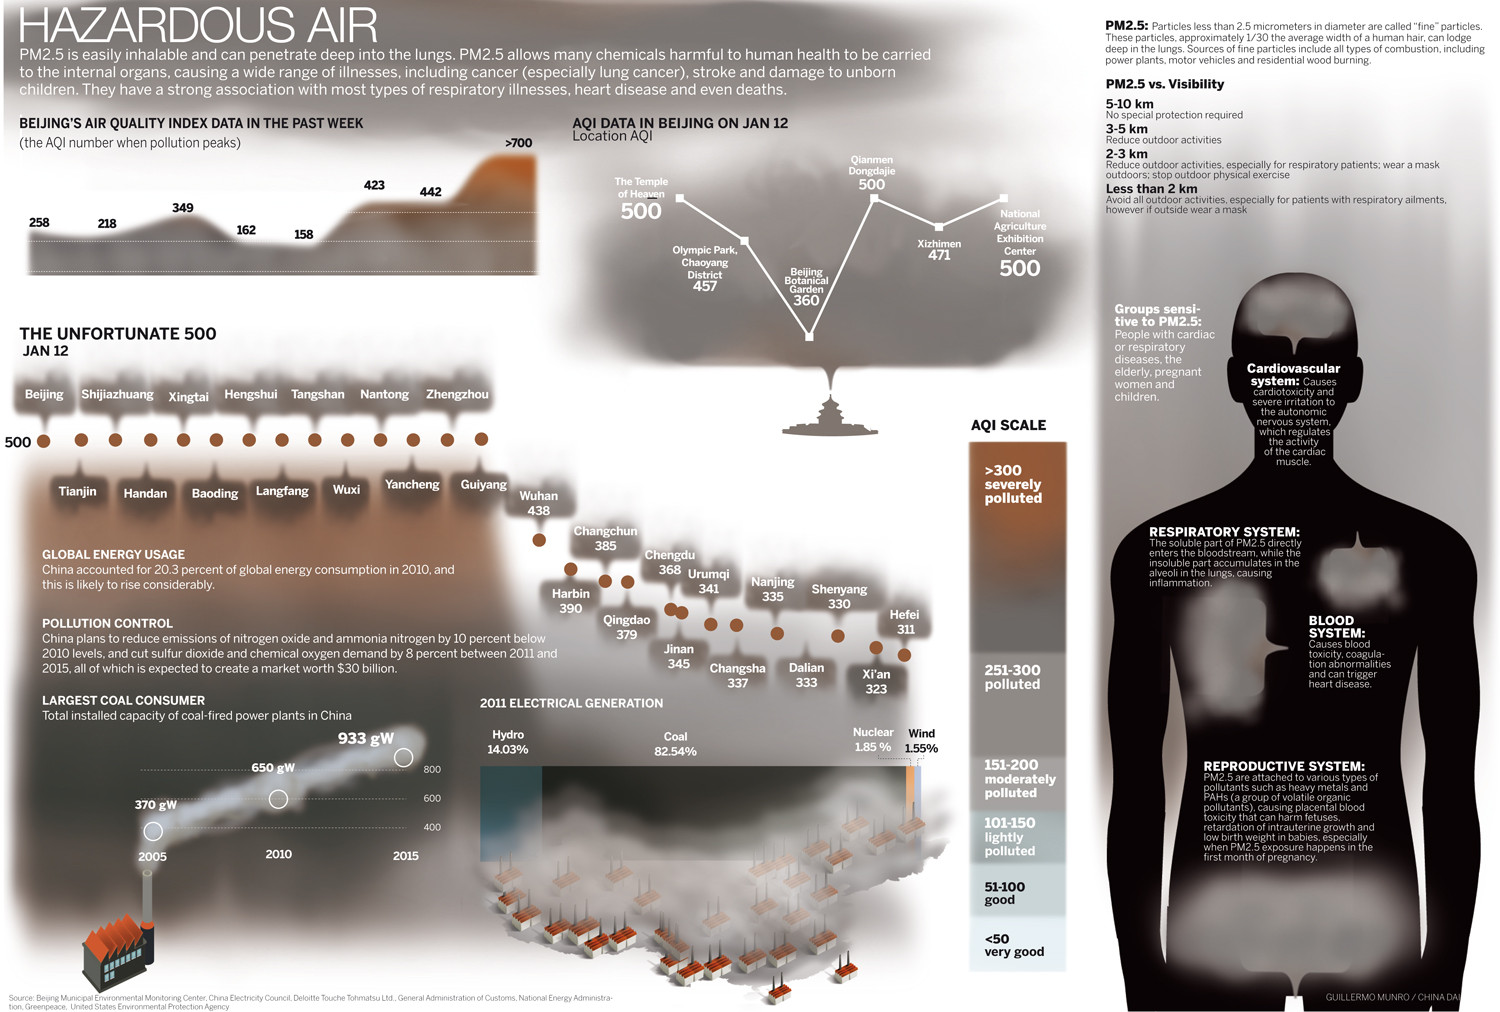 Hazardous Air Infographic